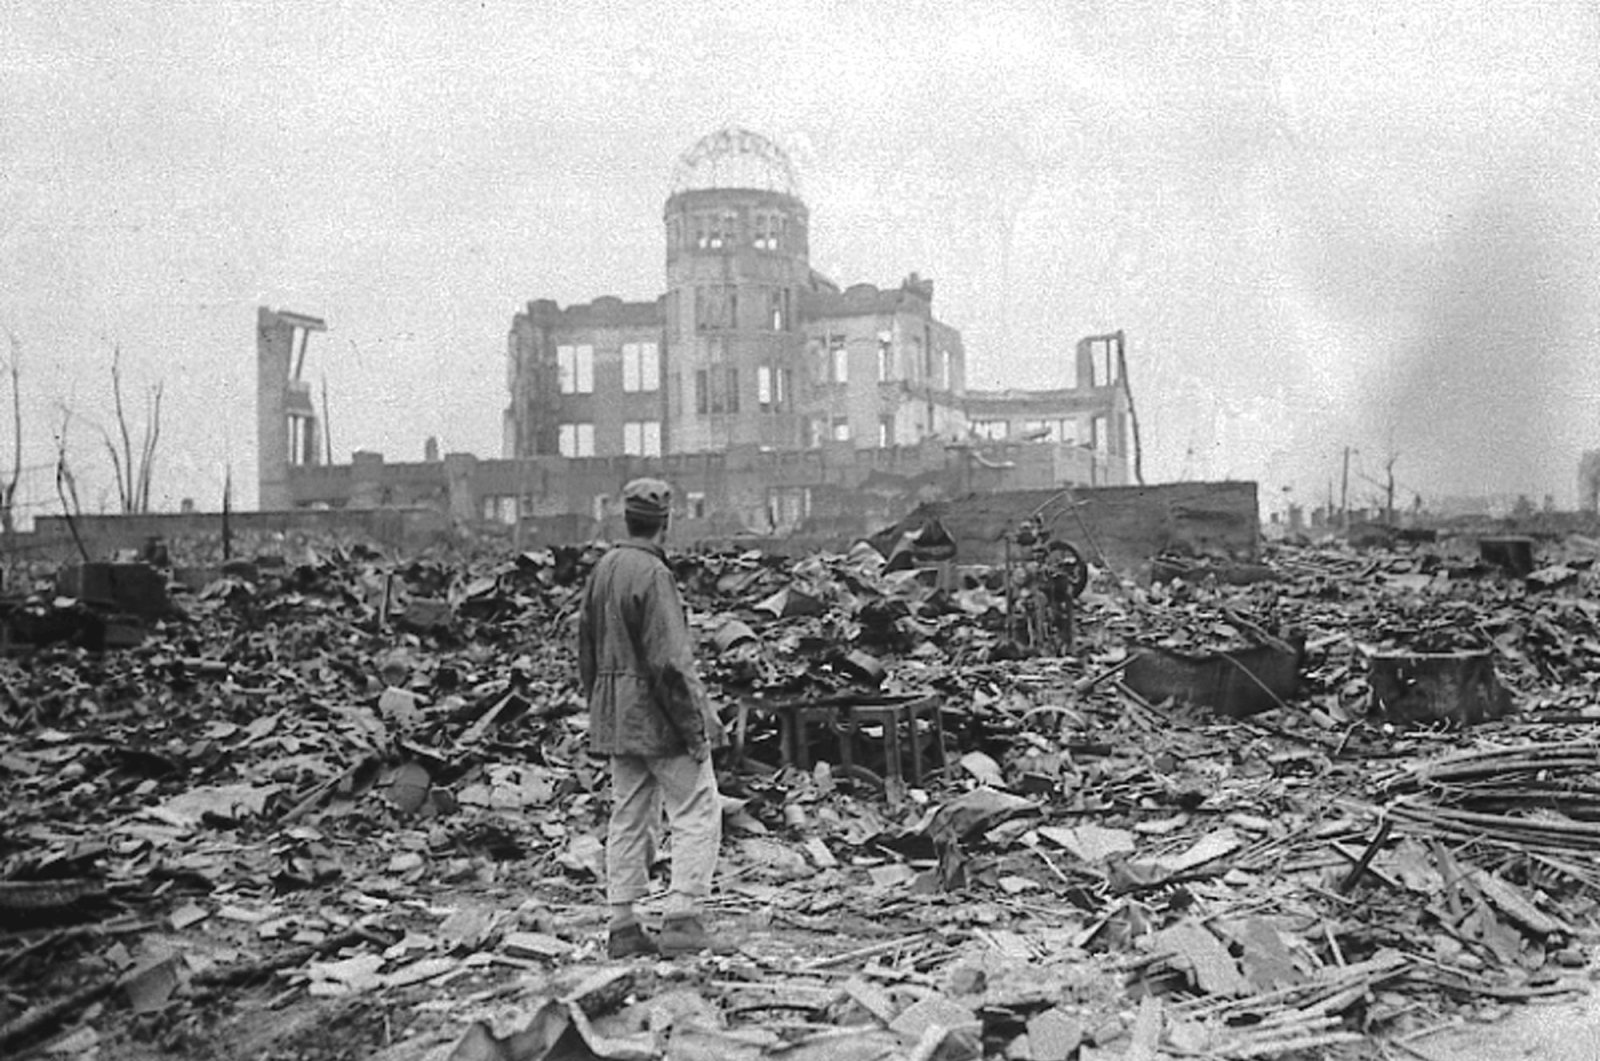 A correspondent stands in a sea of rubble before the shell of a building that once was a movie theater in Hiroshima, Japan, Sept. 8, 1945. (AP Photo)